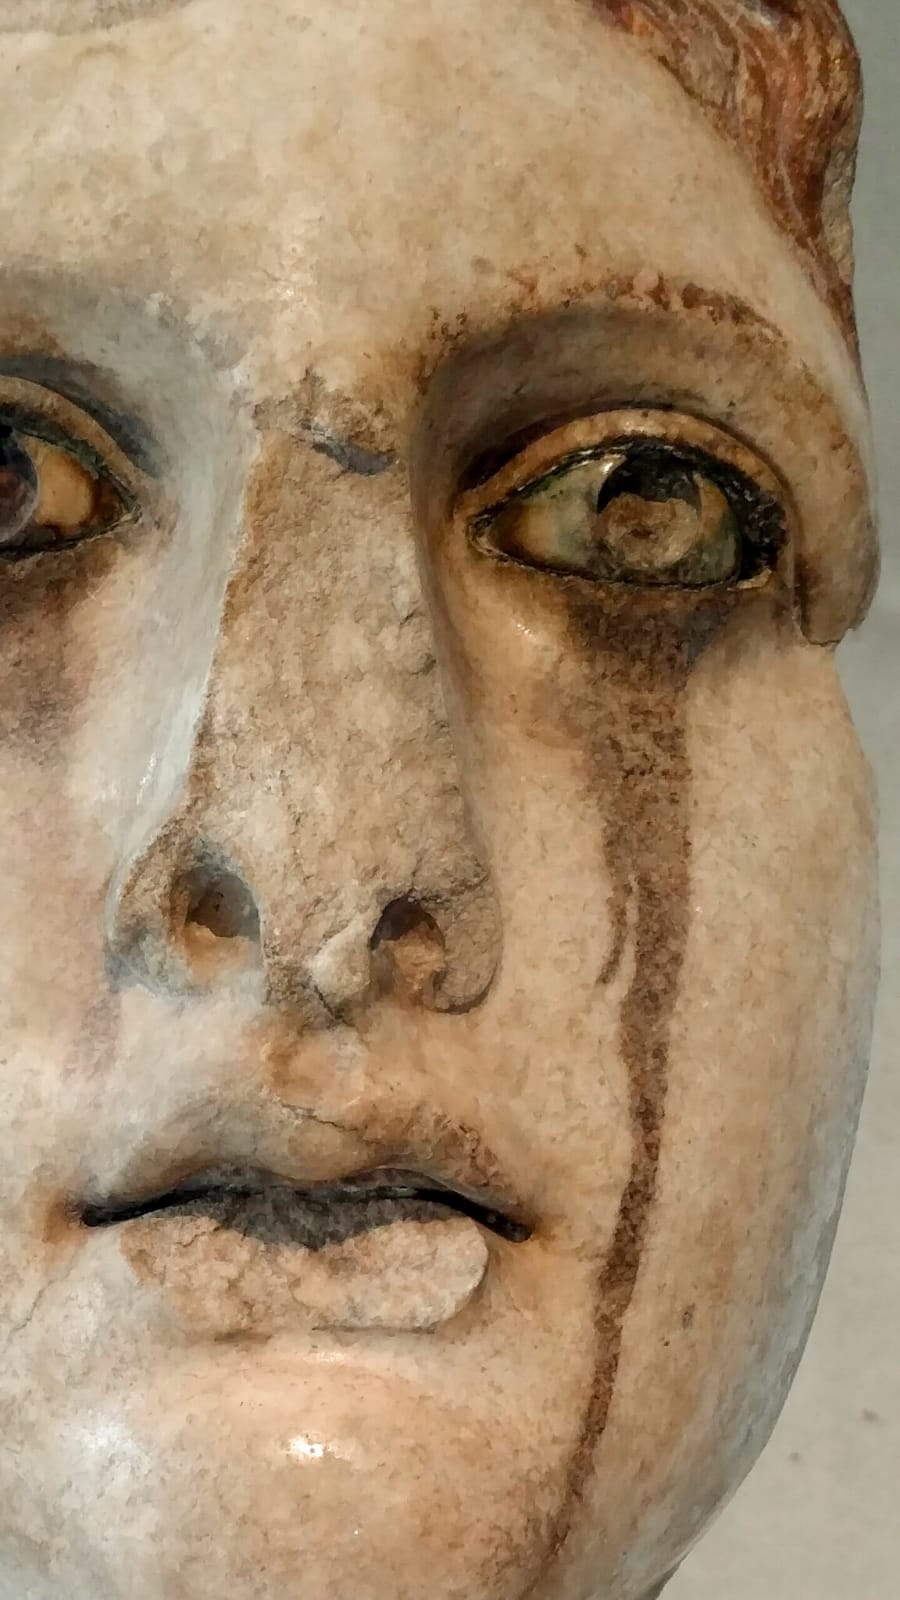 1_Statue Crying_Acropolis Museum.jpg